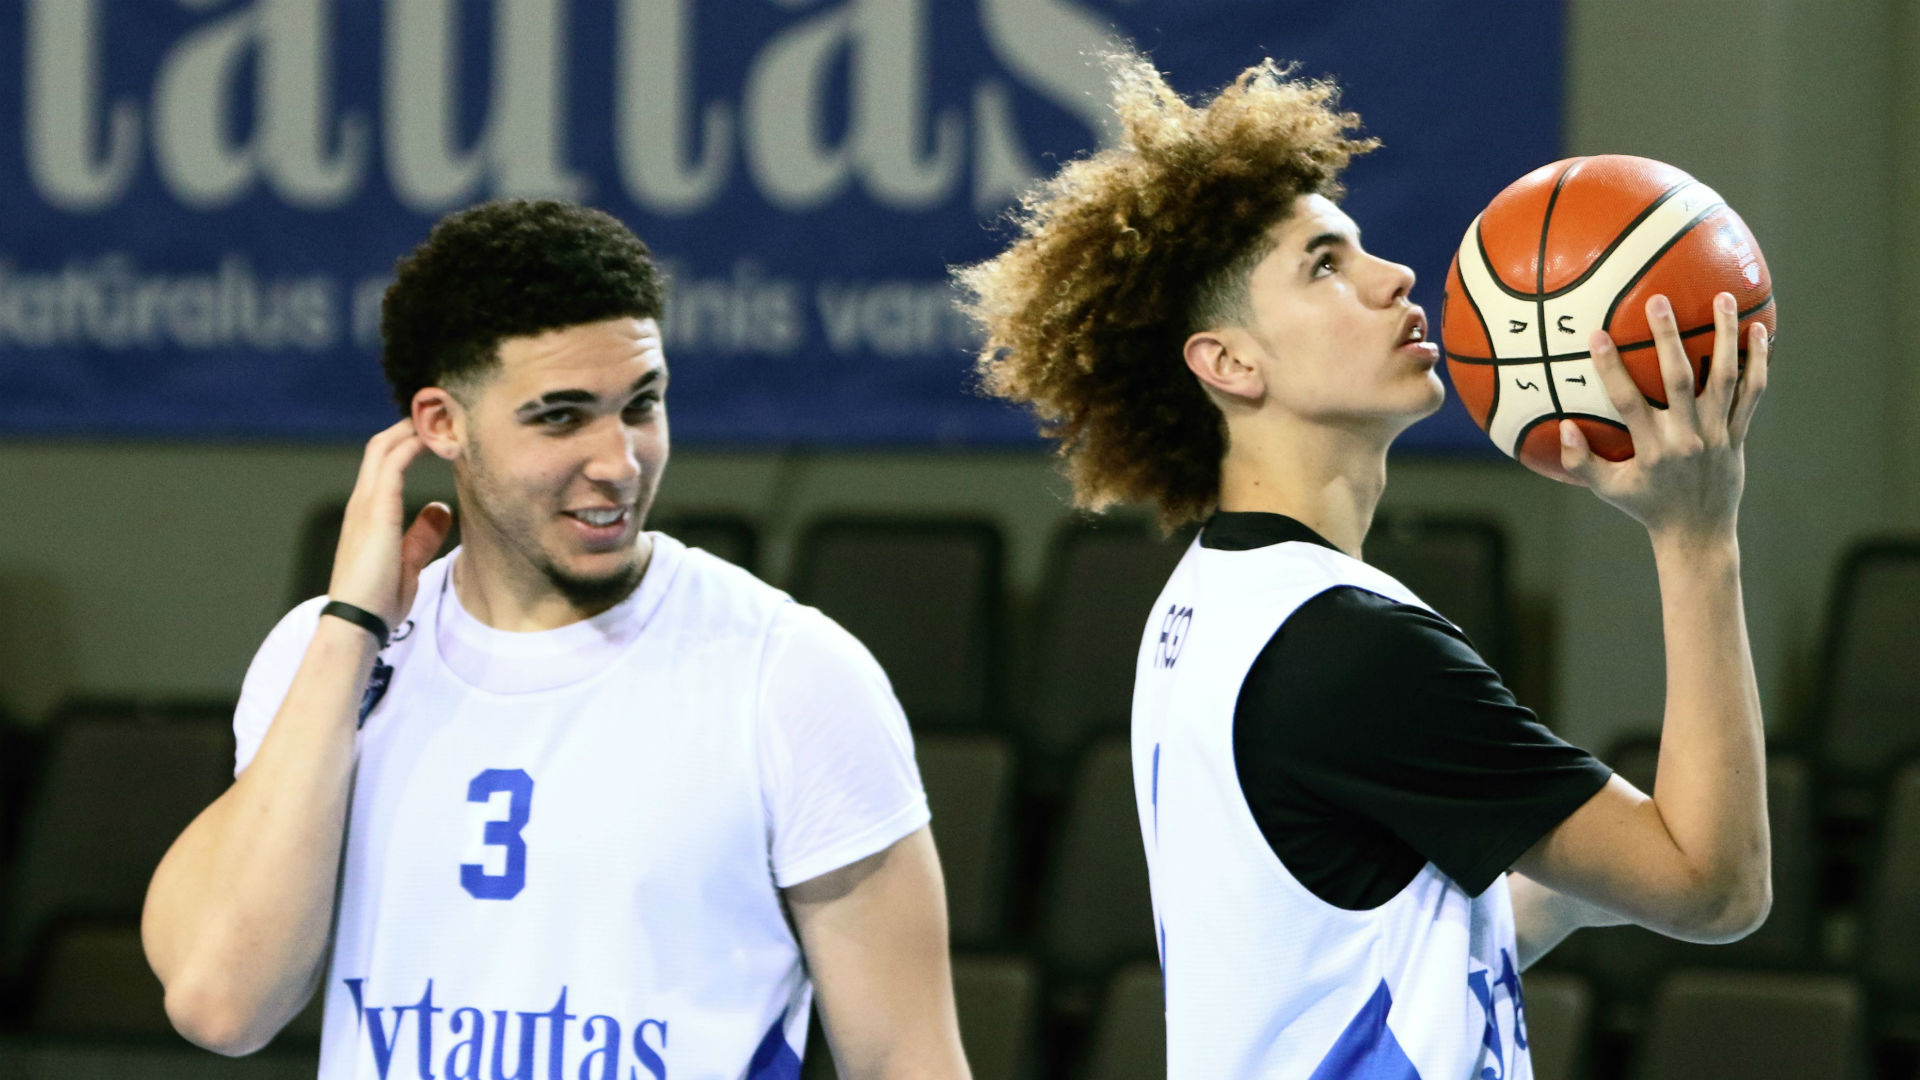 Branding the victor in Ball brothers' pro debut